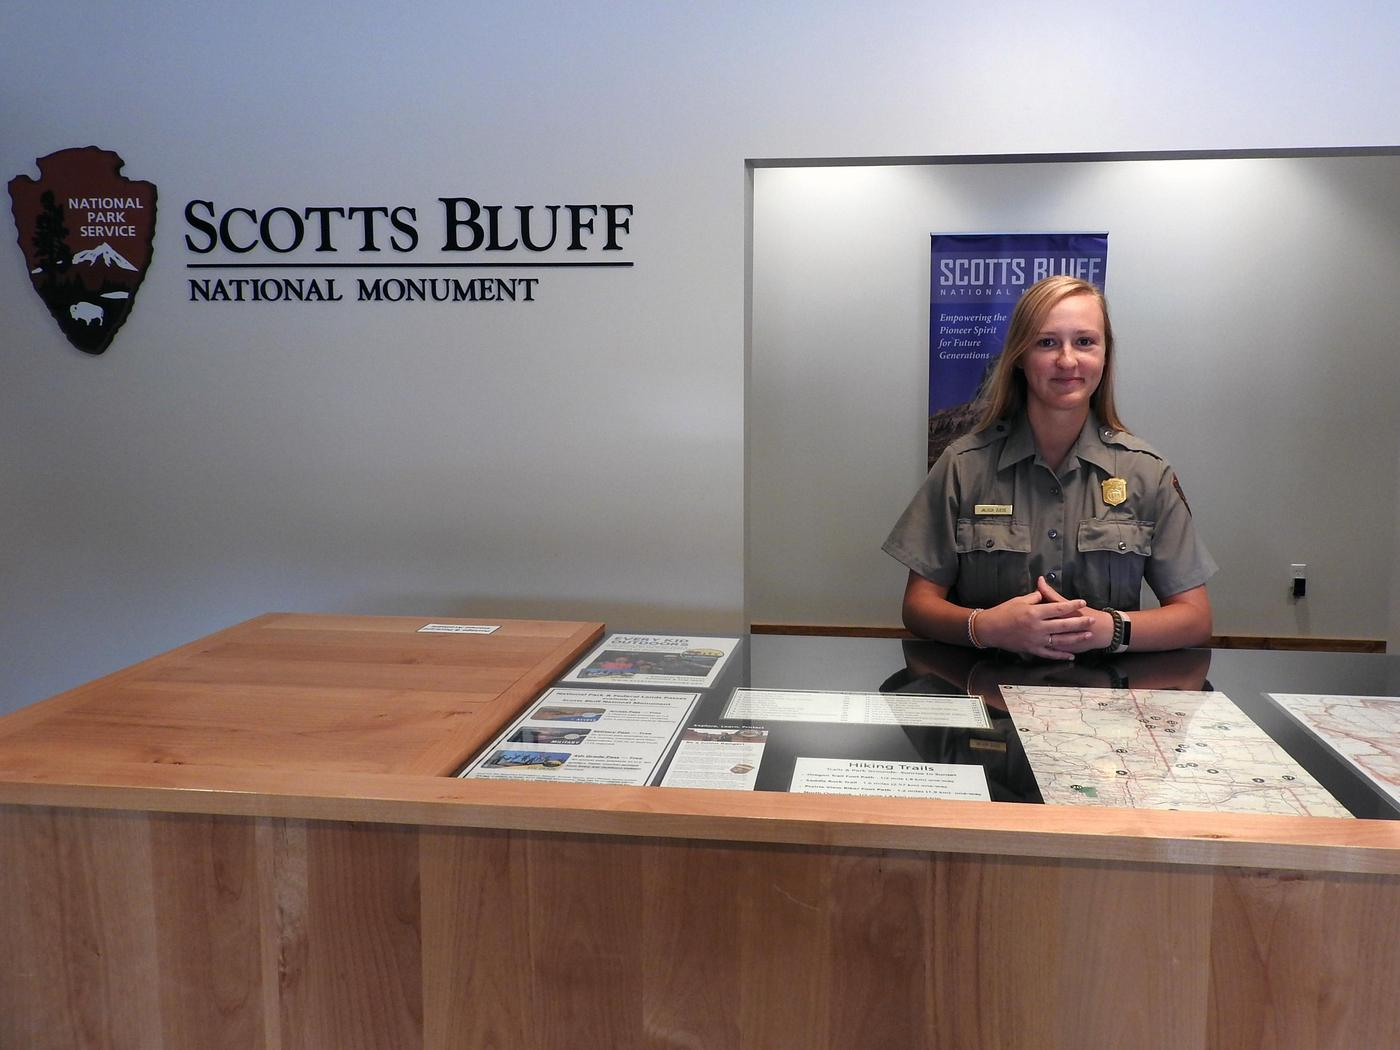 Friendly park rangerPark rangers are available to greet you and answer questions about your visit to Scotts Bluff National Monument.